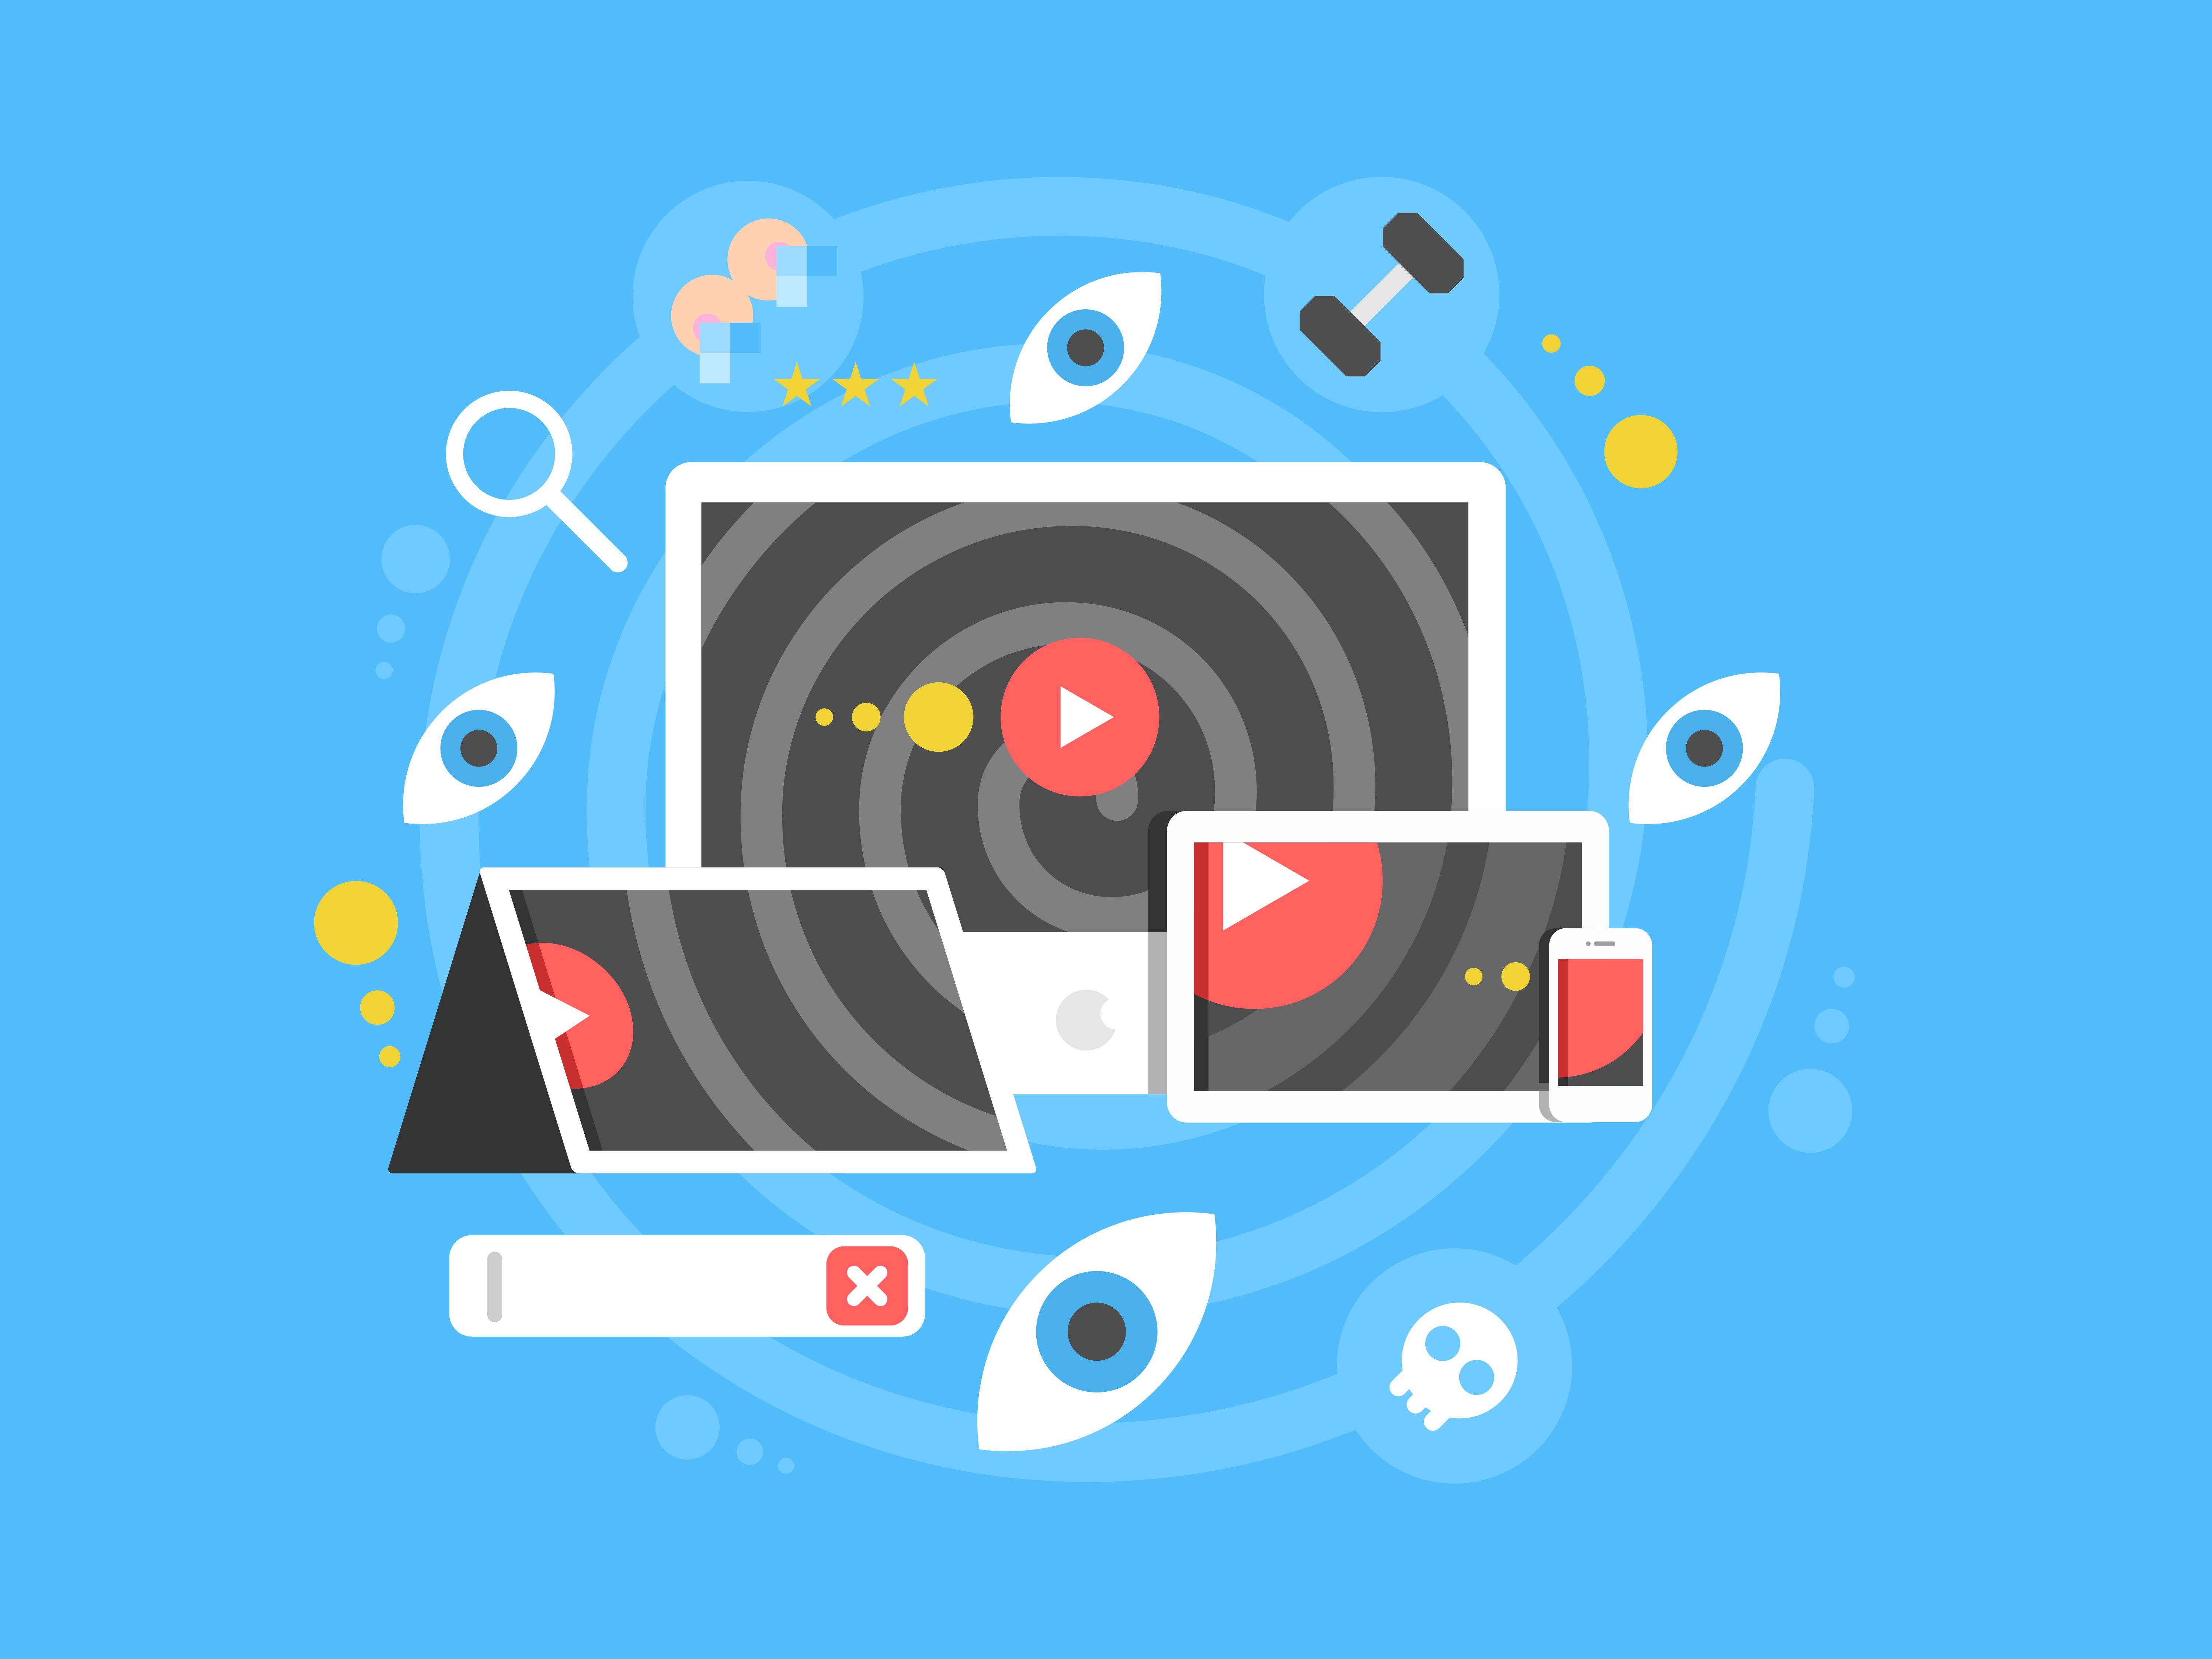 How to Make Your YouTube Videos Pop with Video Marketing